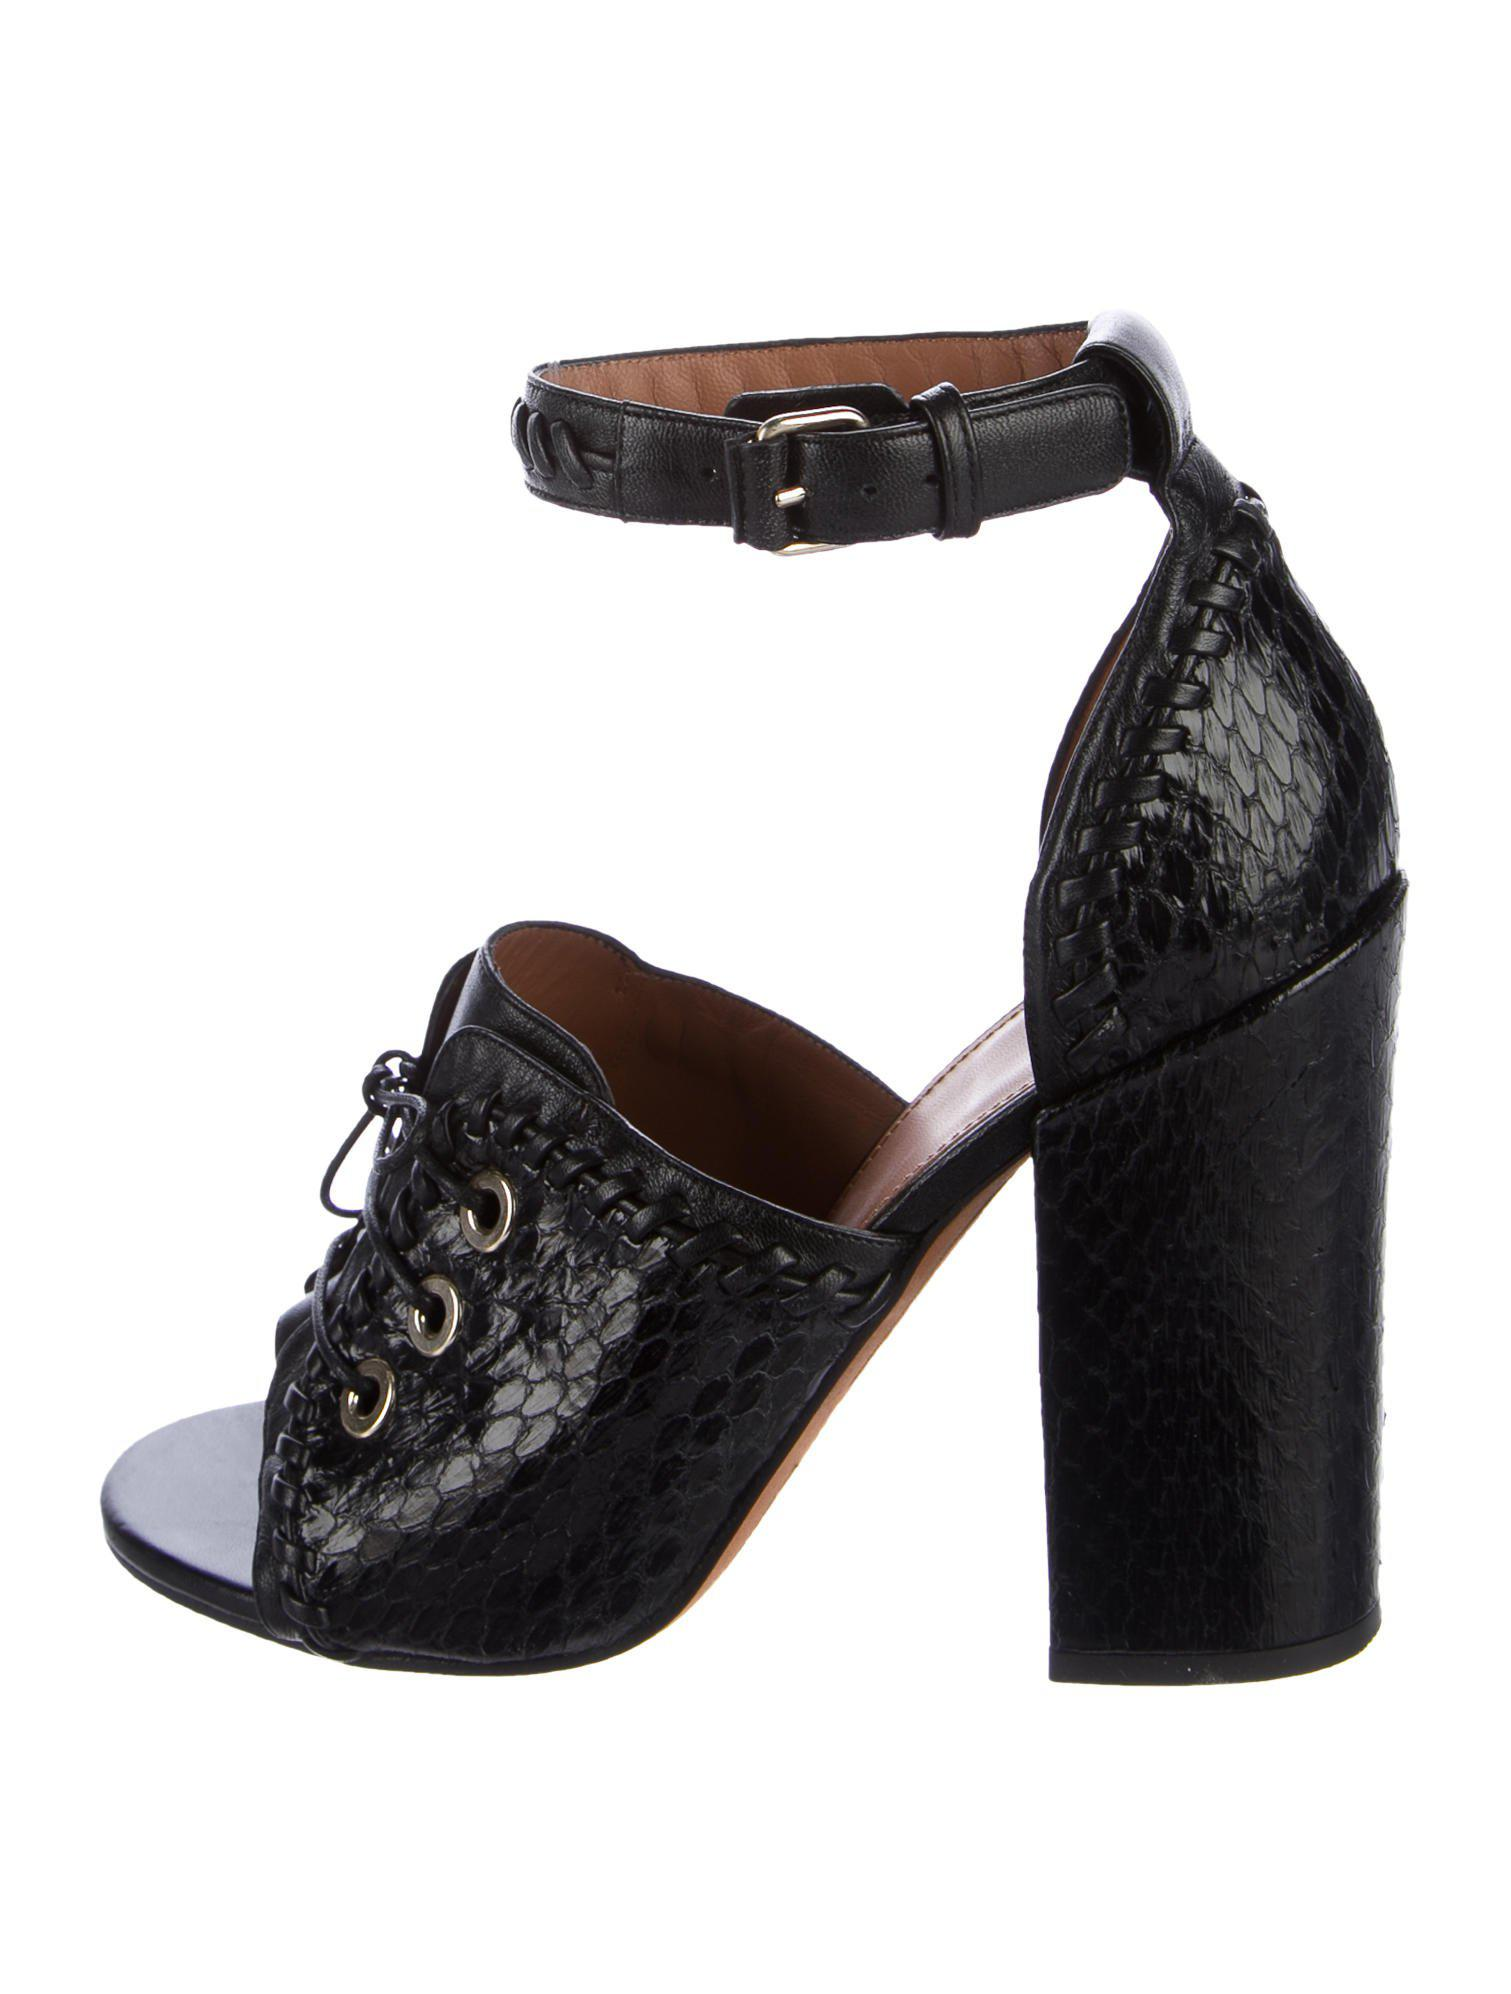 Givenchy Snakeskin Lace-Up Sandals collections h13SR0rHKc